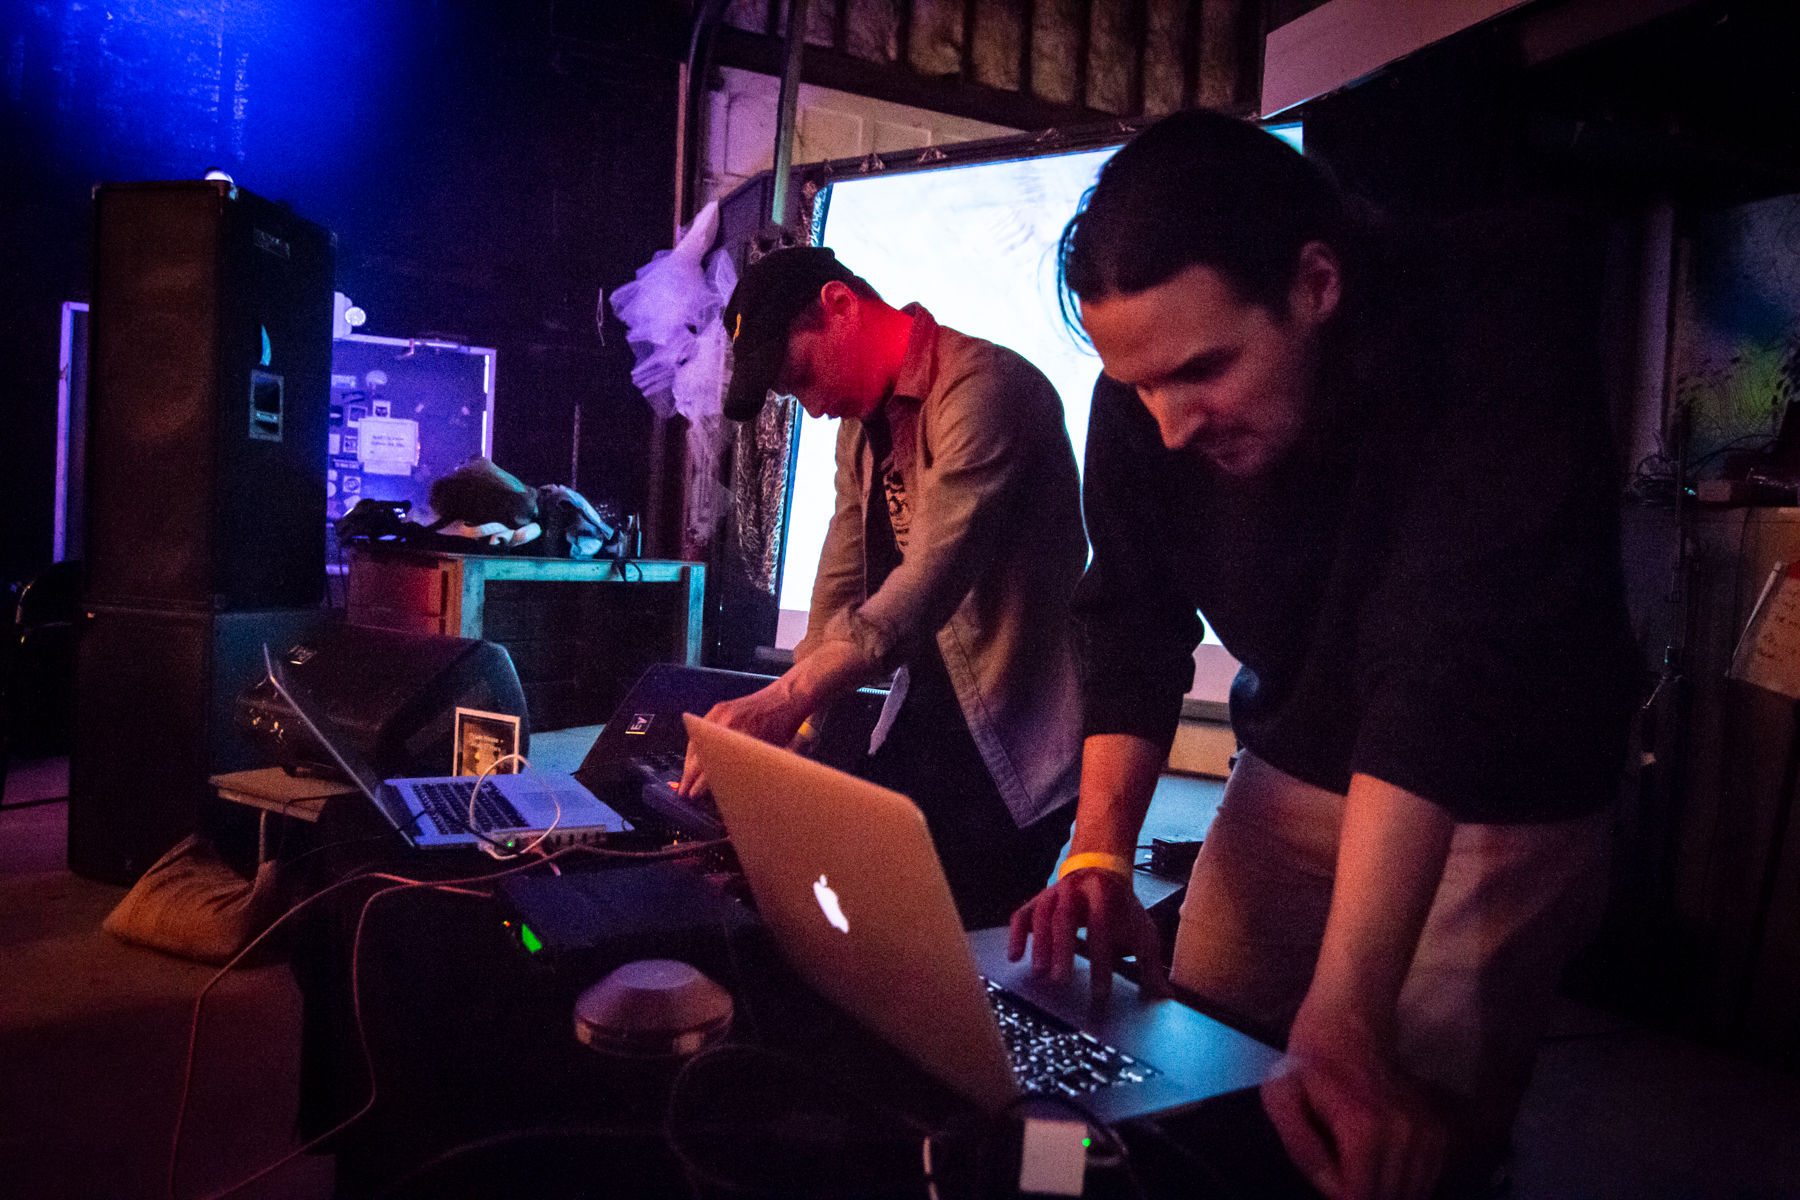 Prism House and Matt O'Hare performing at 'Performance is Alive' at SXSW in March of 2019